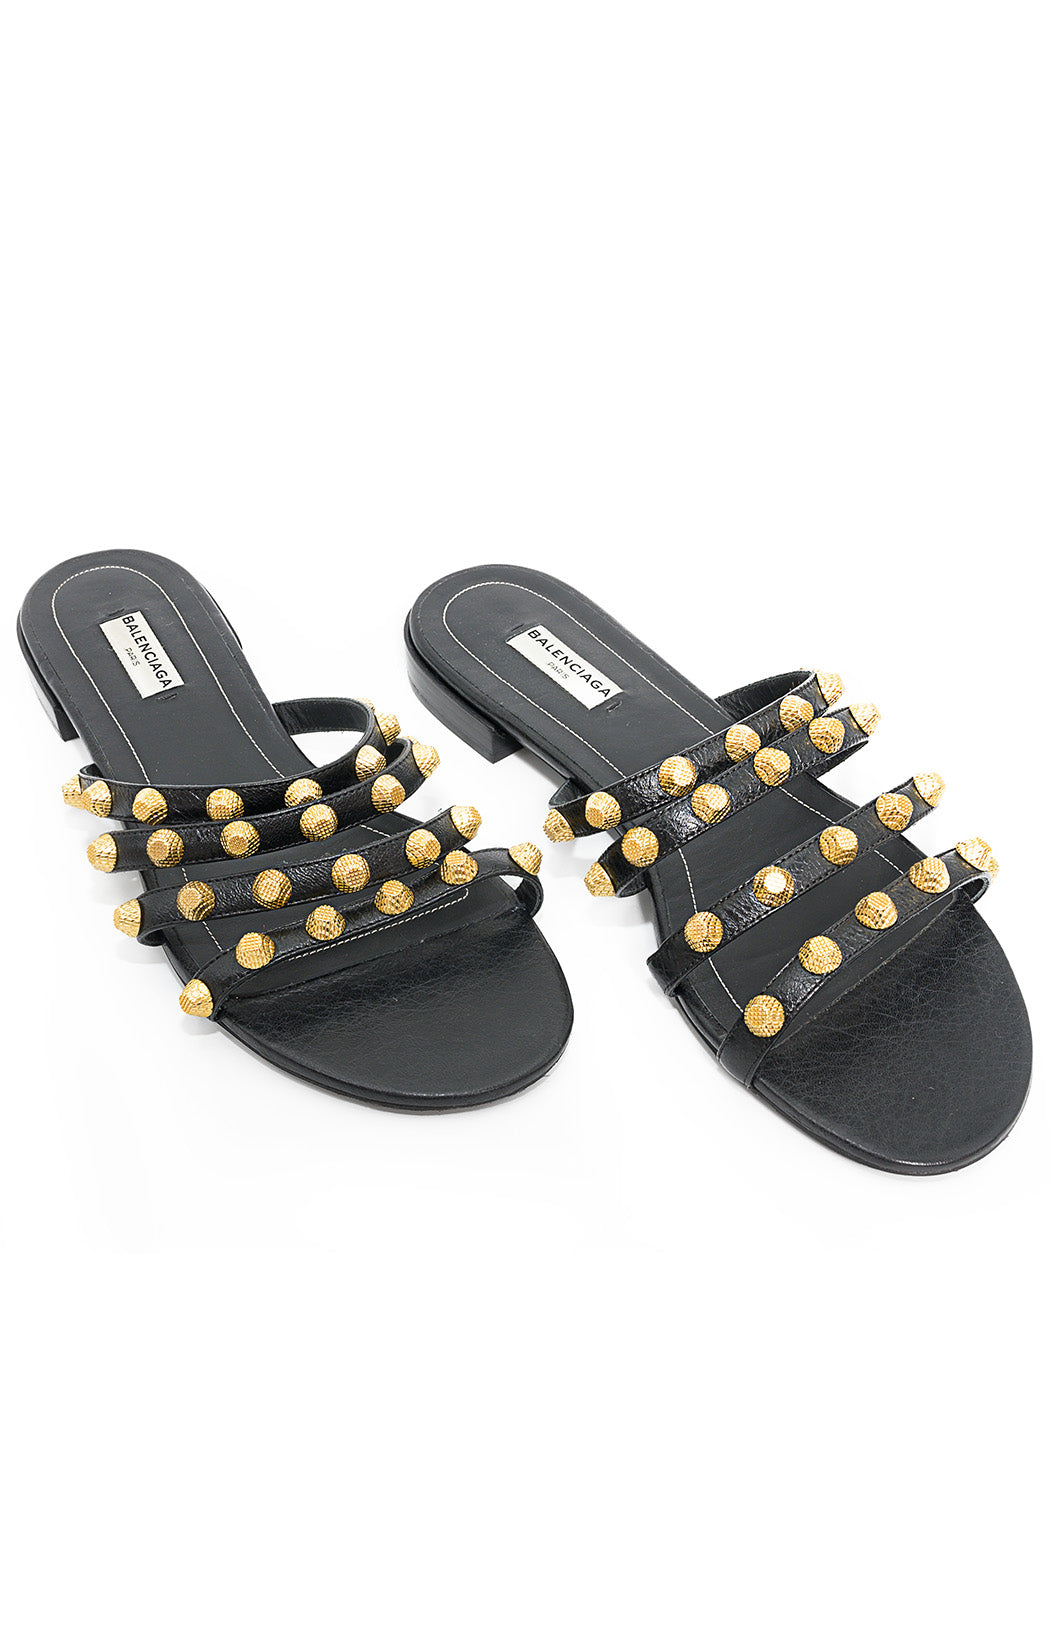 Front view of BALENCIAGA Sandals Size: 38.5/8.5